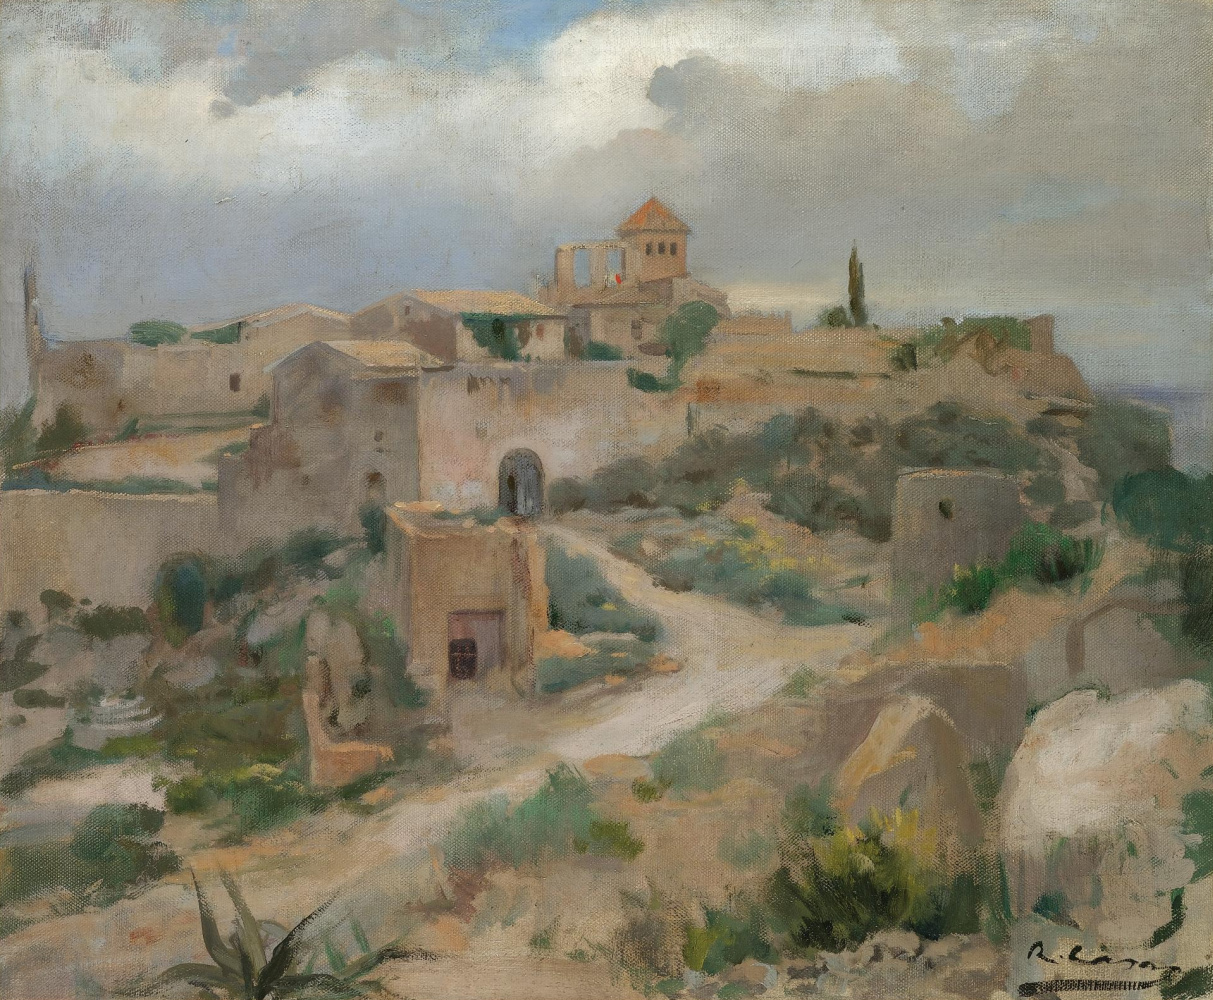 Ramon Casas i Carbó. Landscape with castle Tamarit, Tarragona, Spain